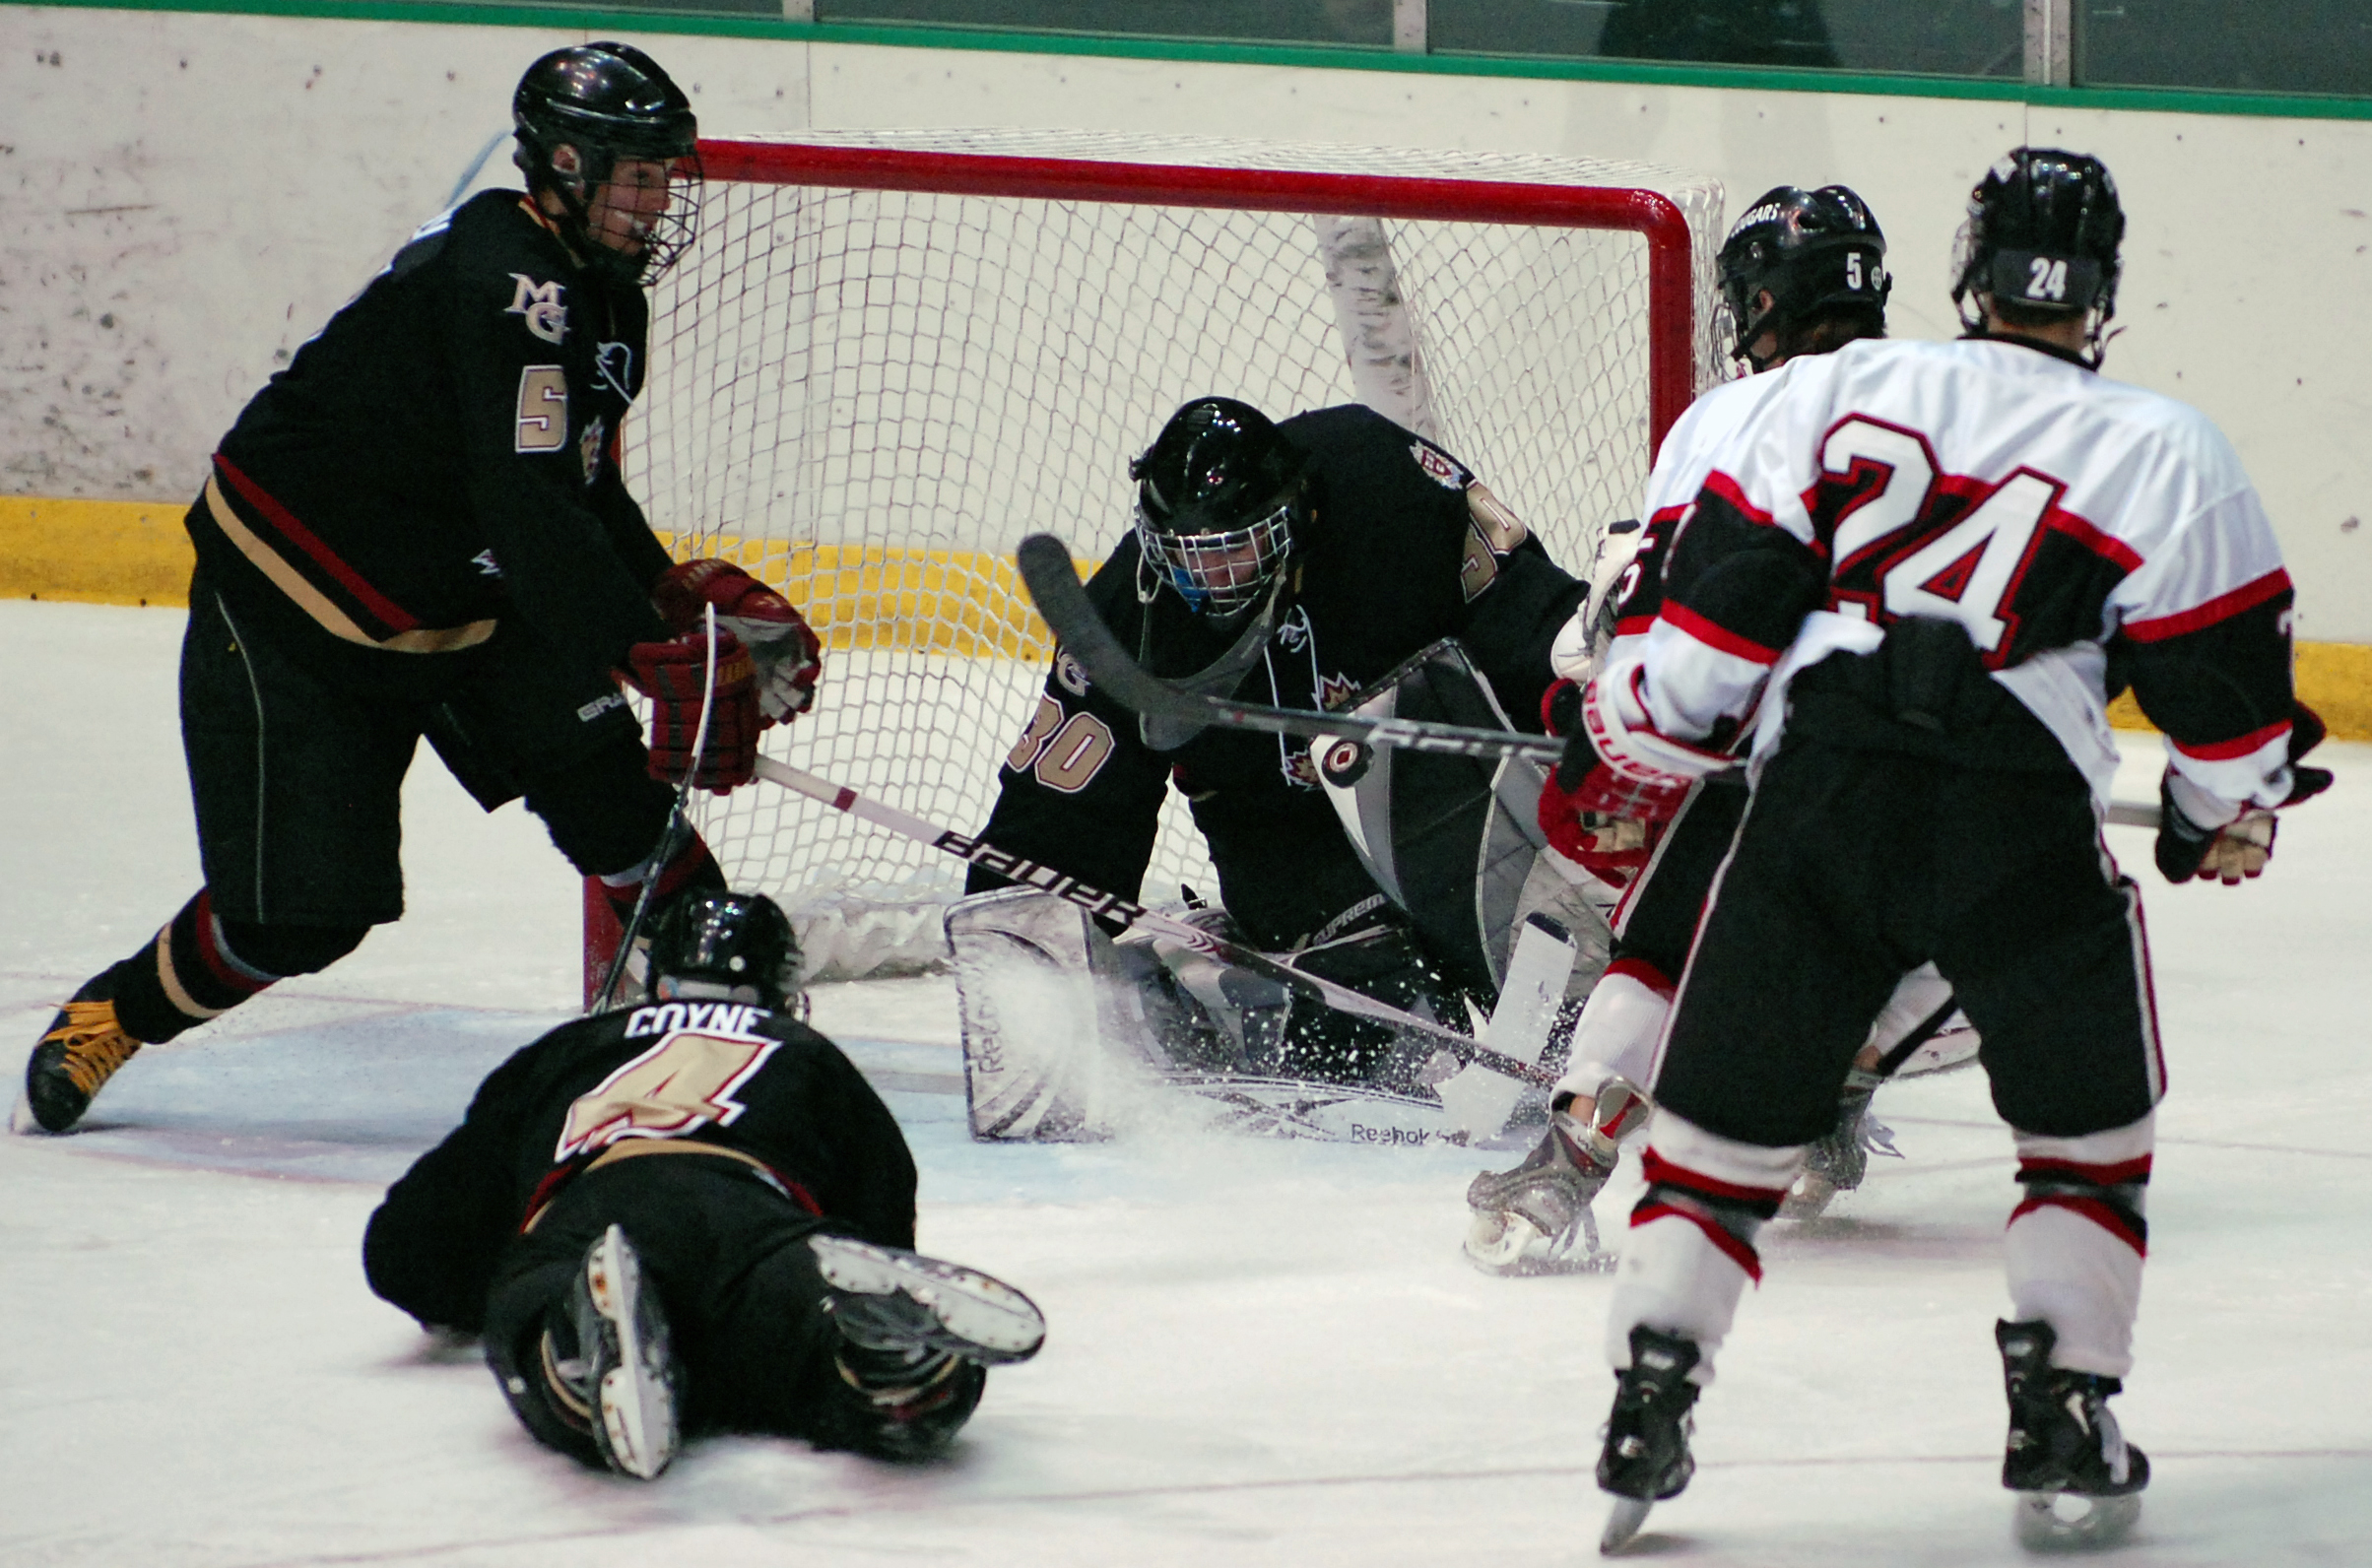 hockey vs football Sports term papers (paper 11568) on hockey vs football : hockey vs football (comparative essay) football and hockey are two sports, which are similar in.